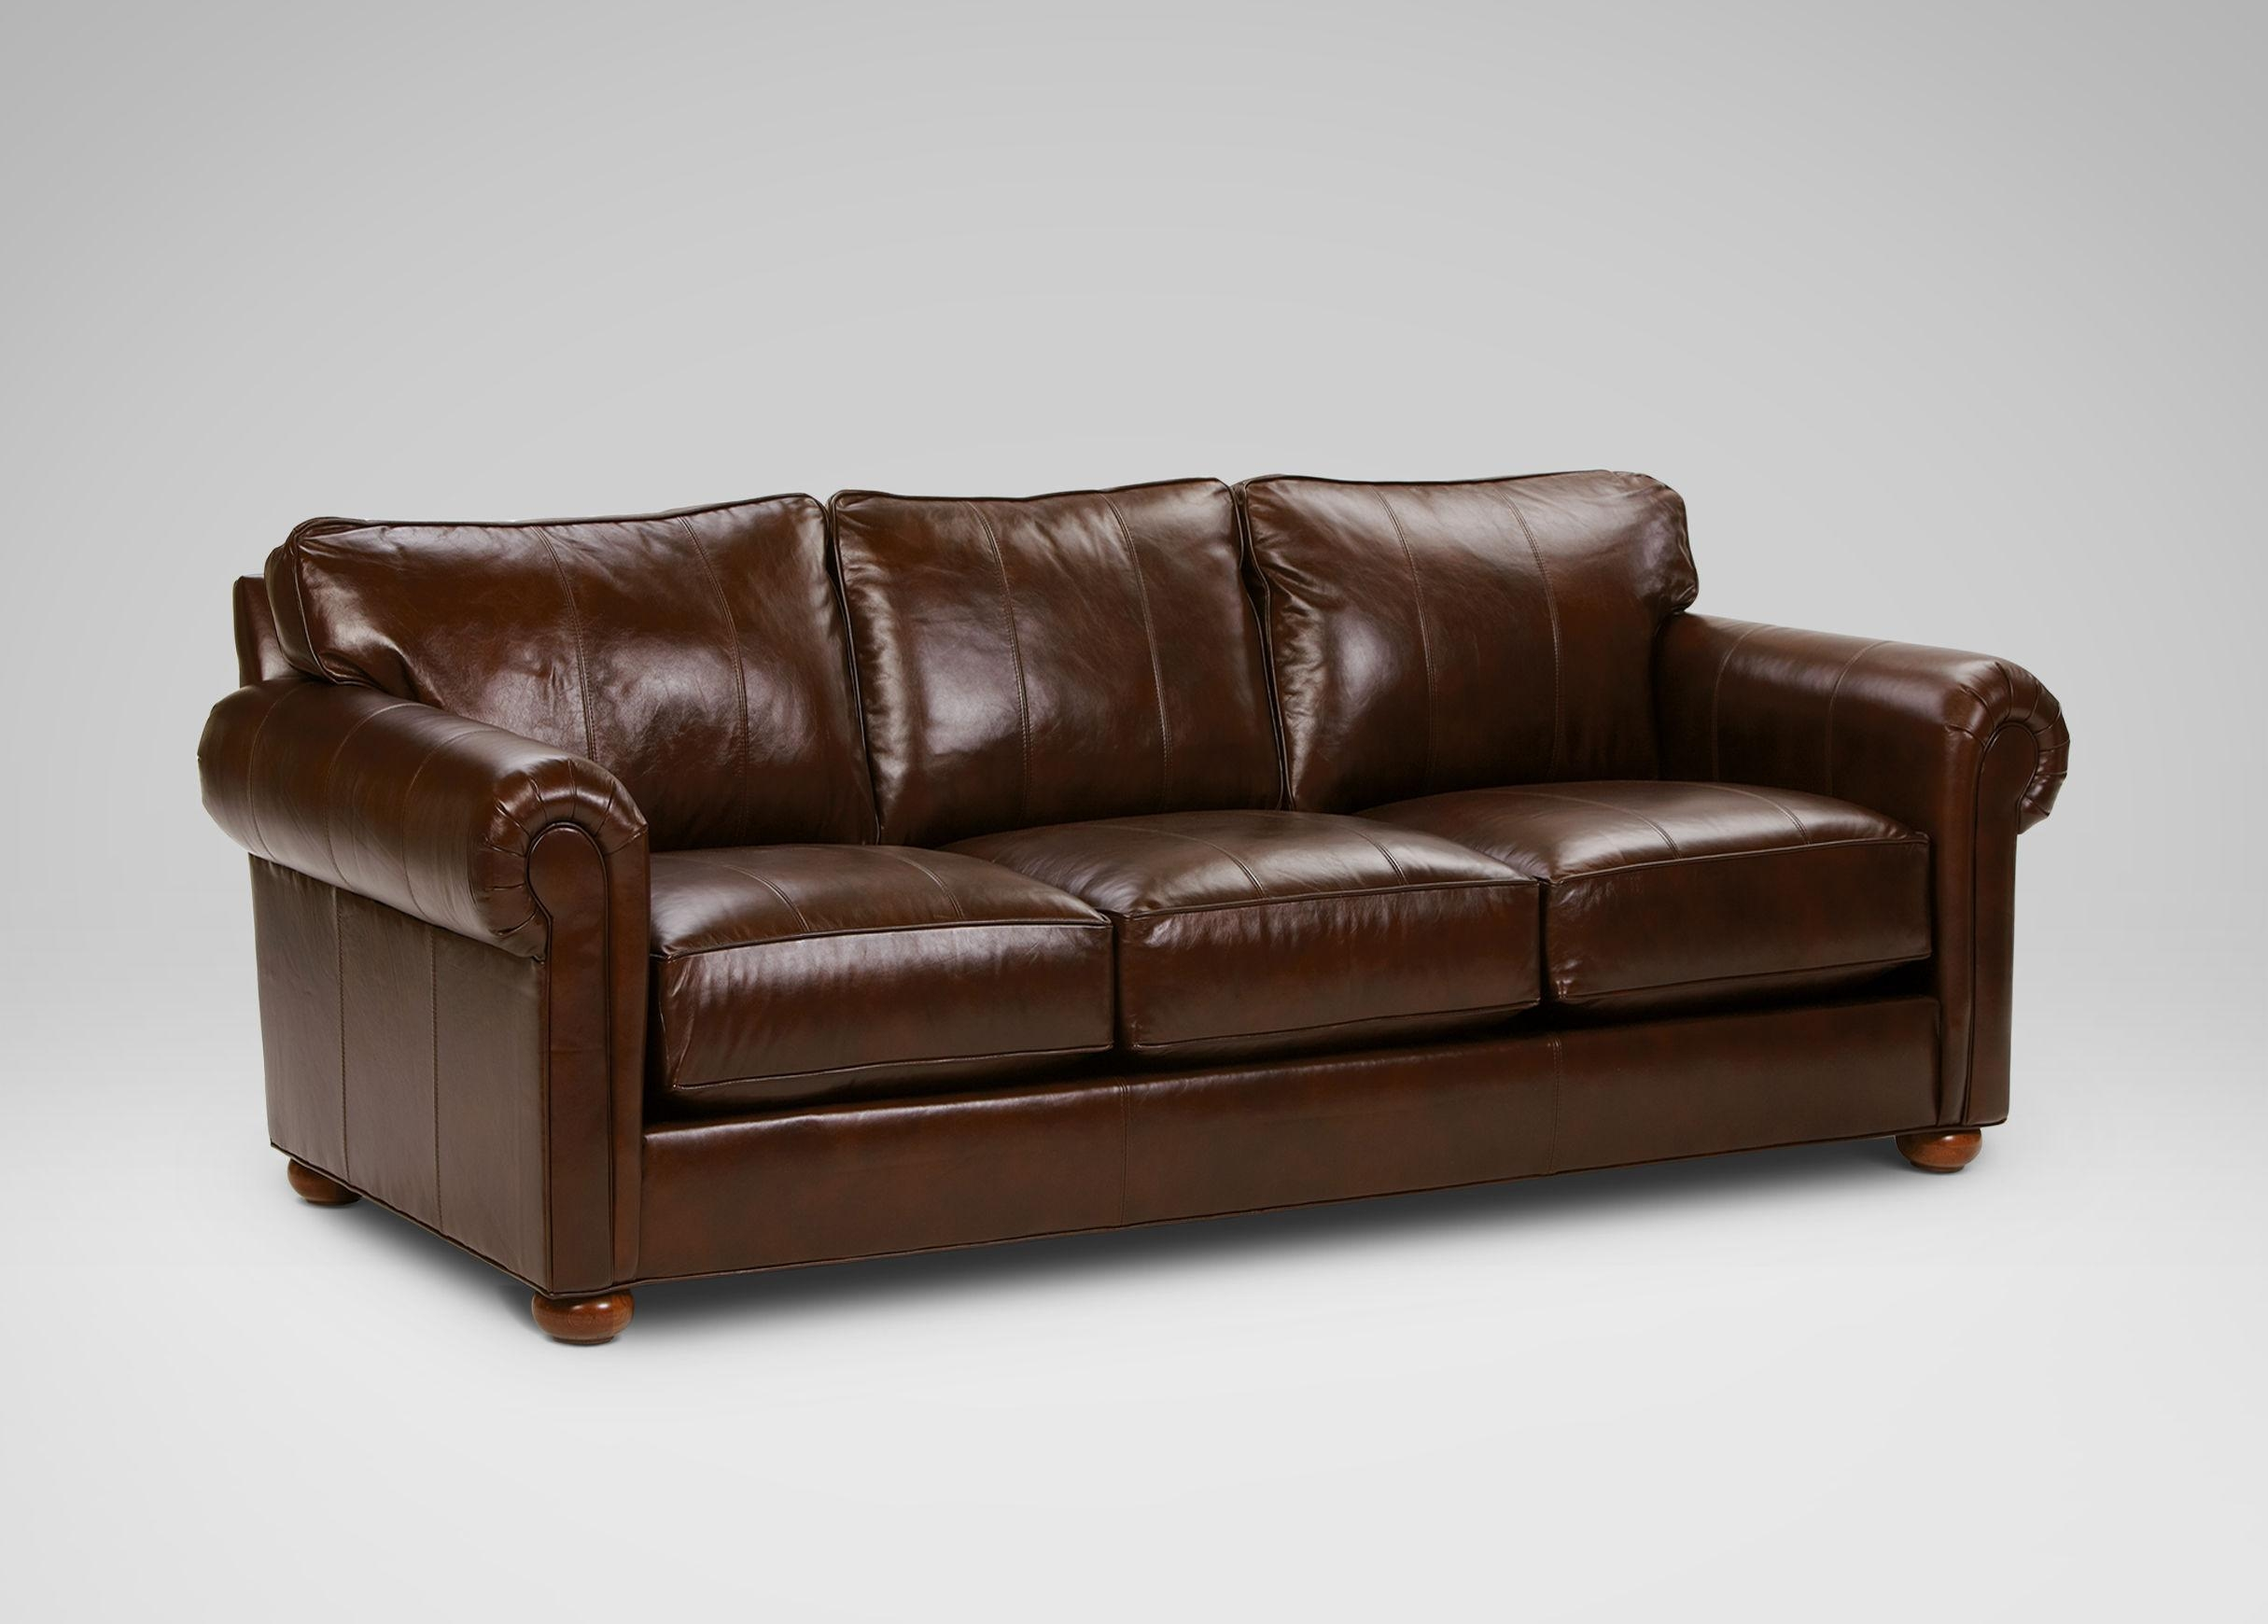 Costco Leather Sofa (View 6 of 20)